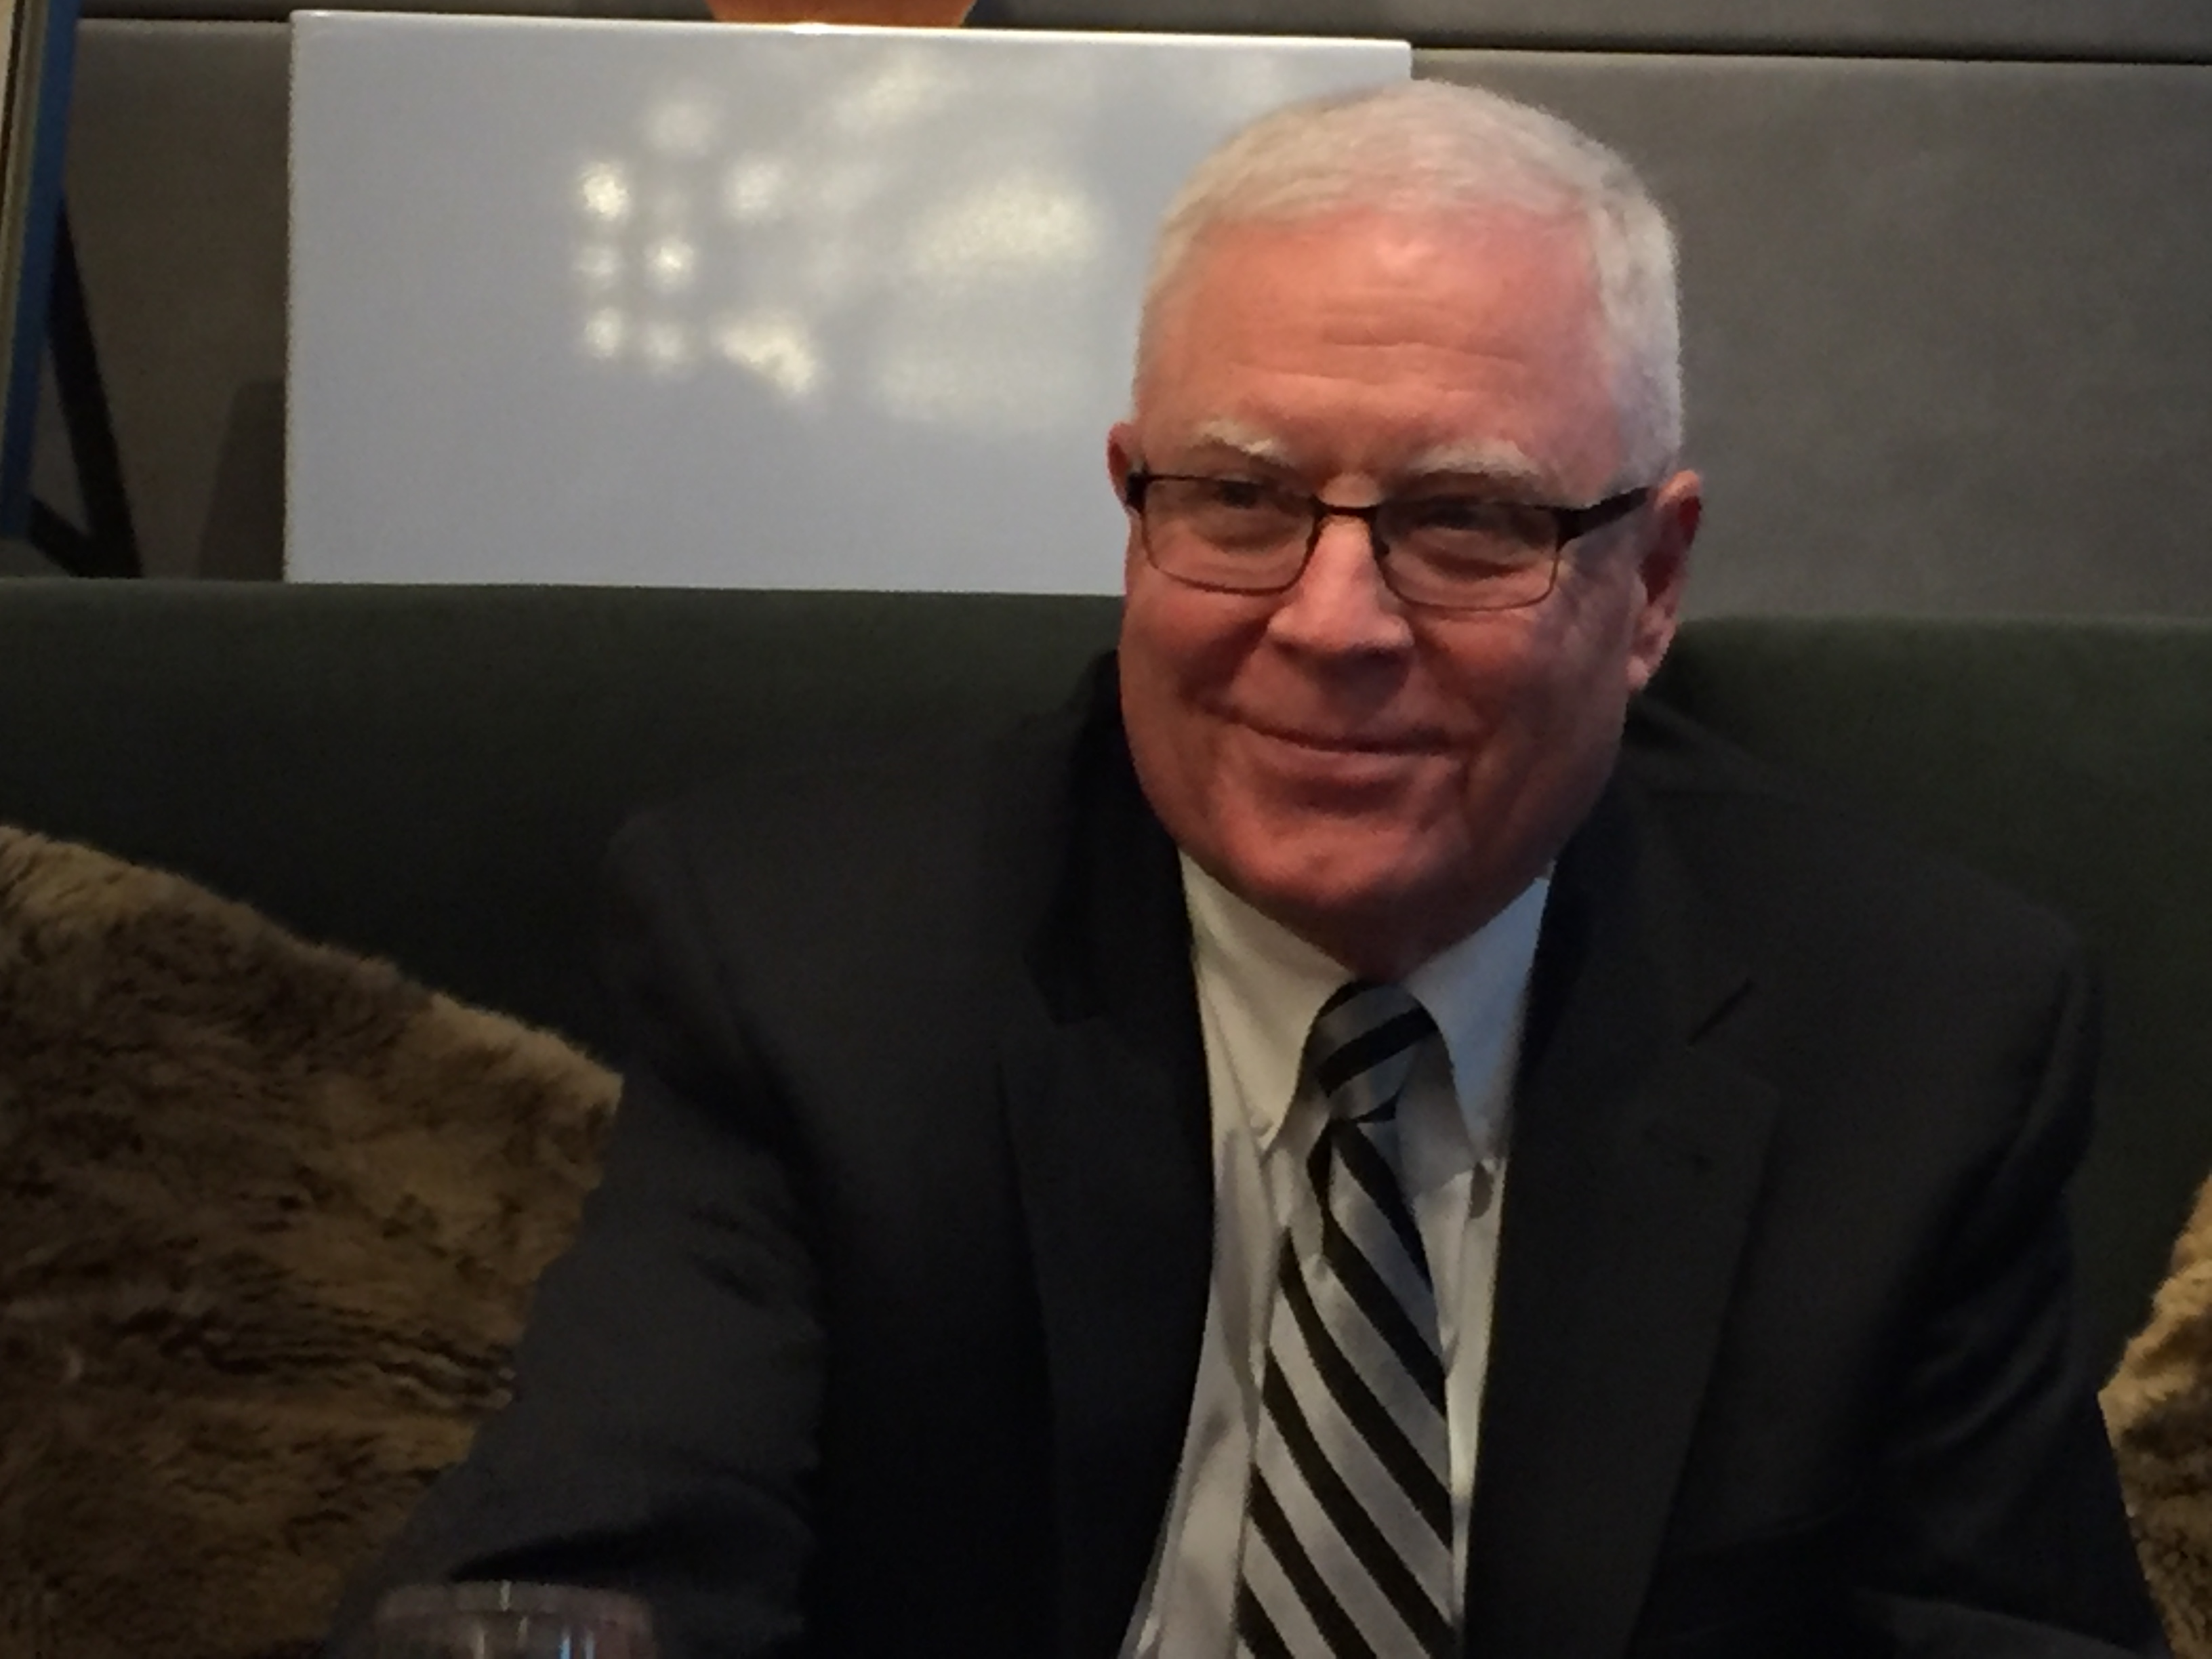 Larry Rafferty - Trusted McHenry County IL Lawyer with Nearly 40 Years of Experience